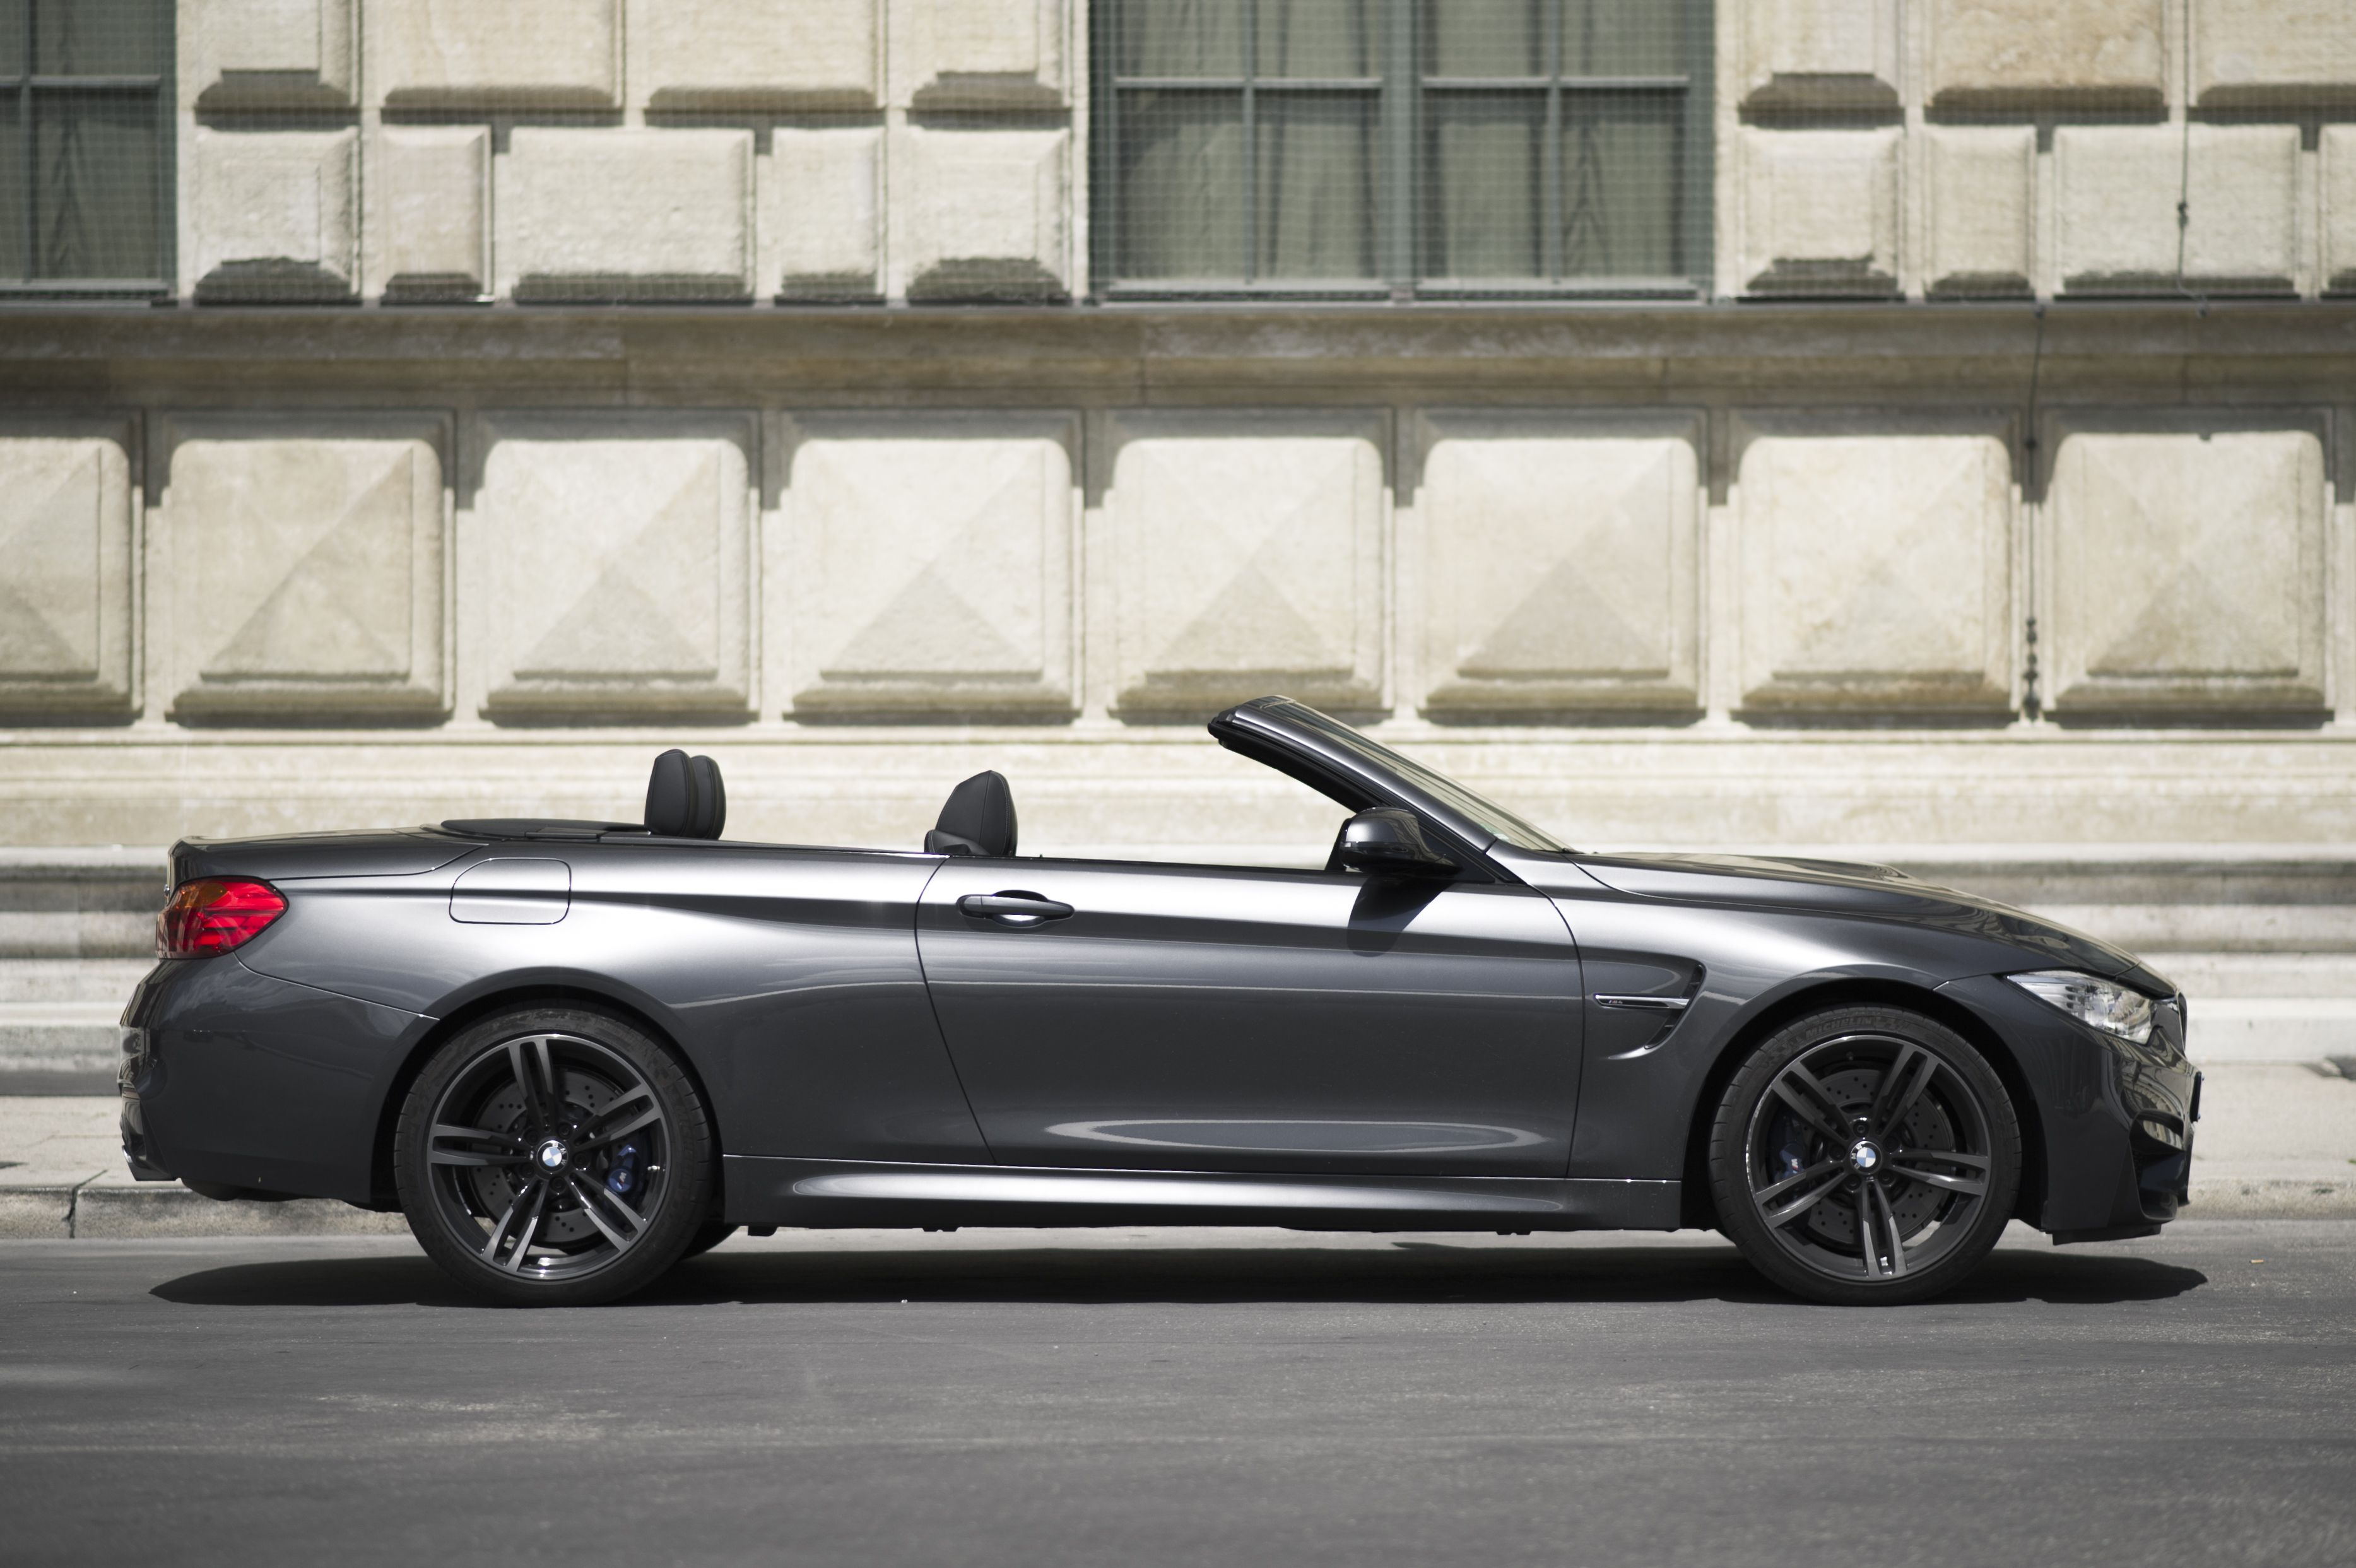 Bmw M4 Convertible Grey Rent Convertible Luxury Germany Cabrio Bmw M4 Bmw Sports Cars Luxury